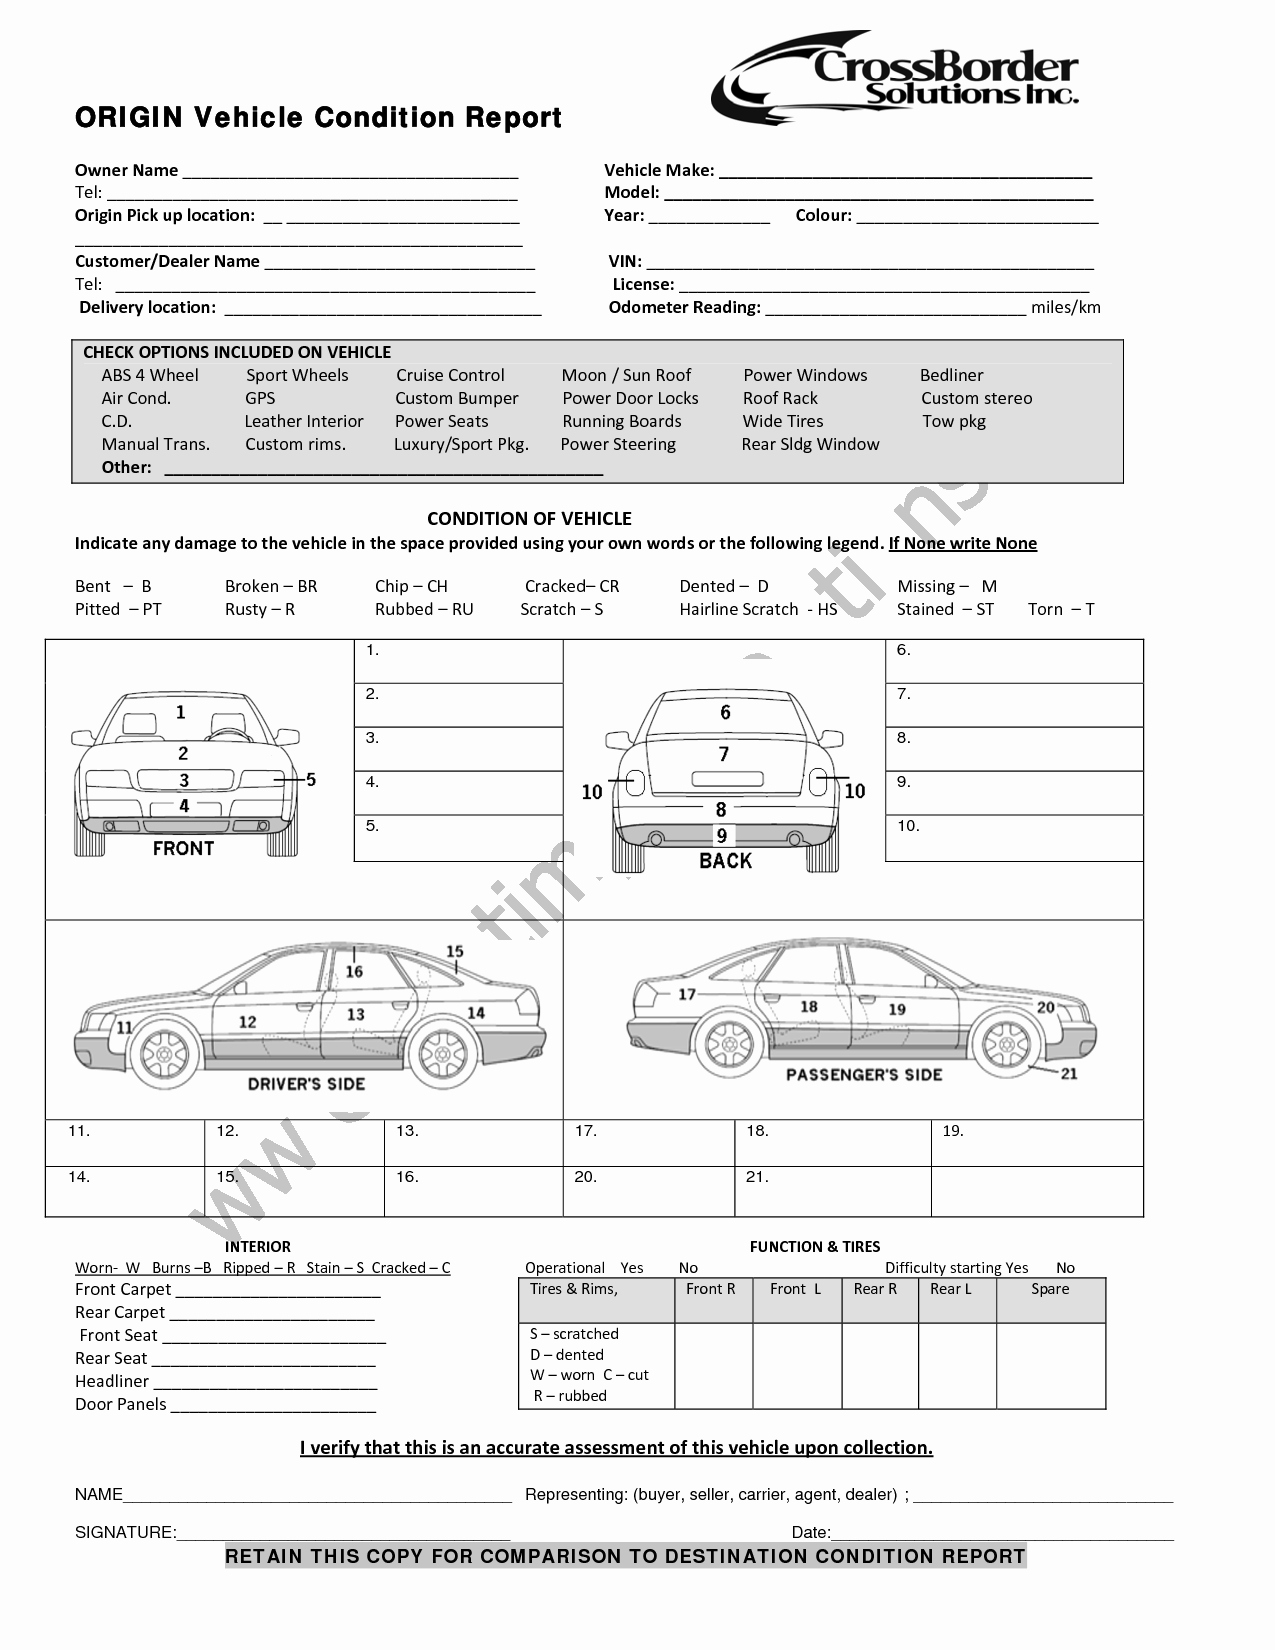 Vehicle Condition Report Template Luxury Vehicle Condition Report Templates Word Excel Samples